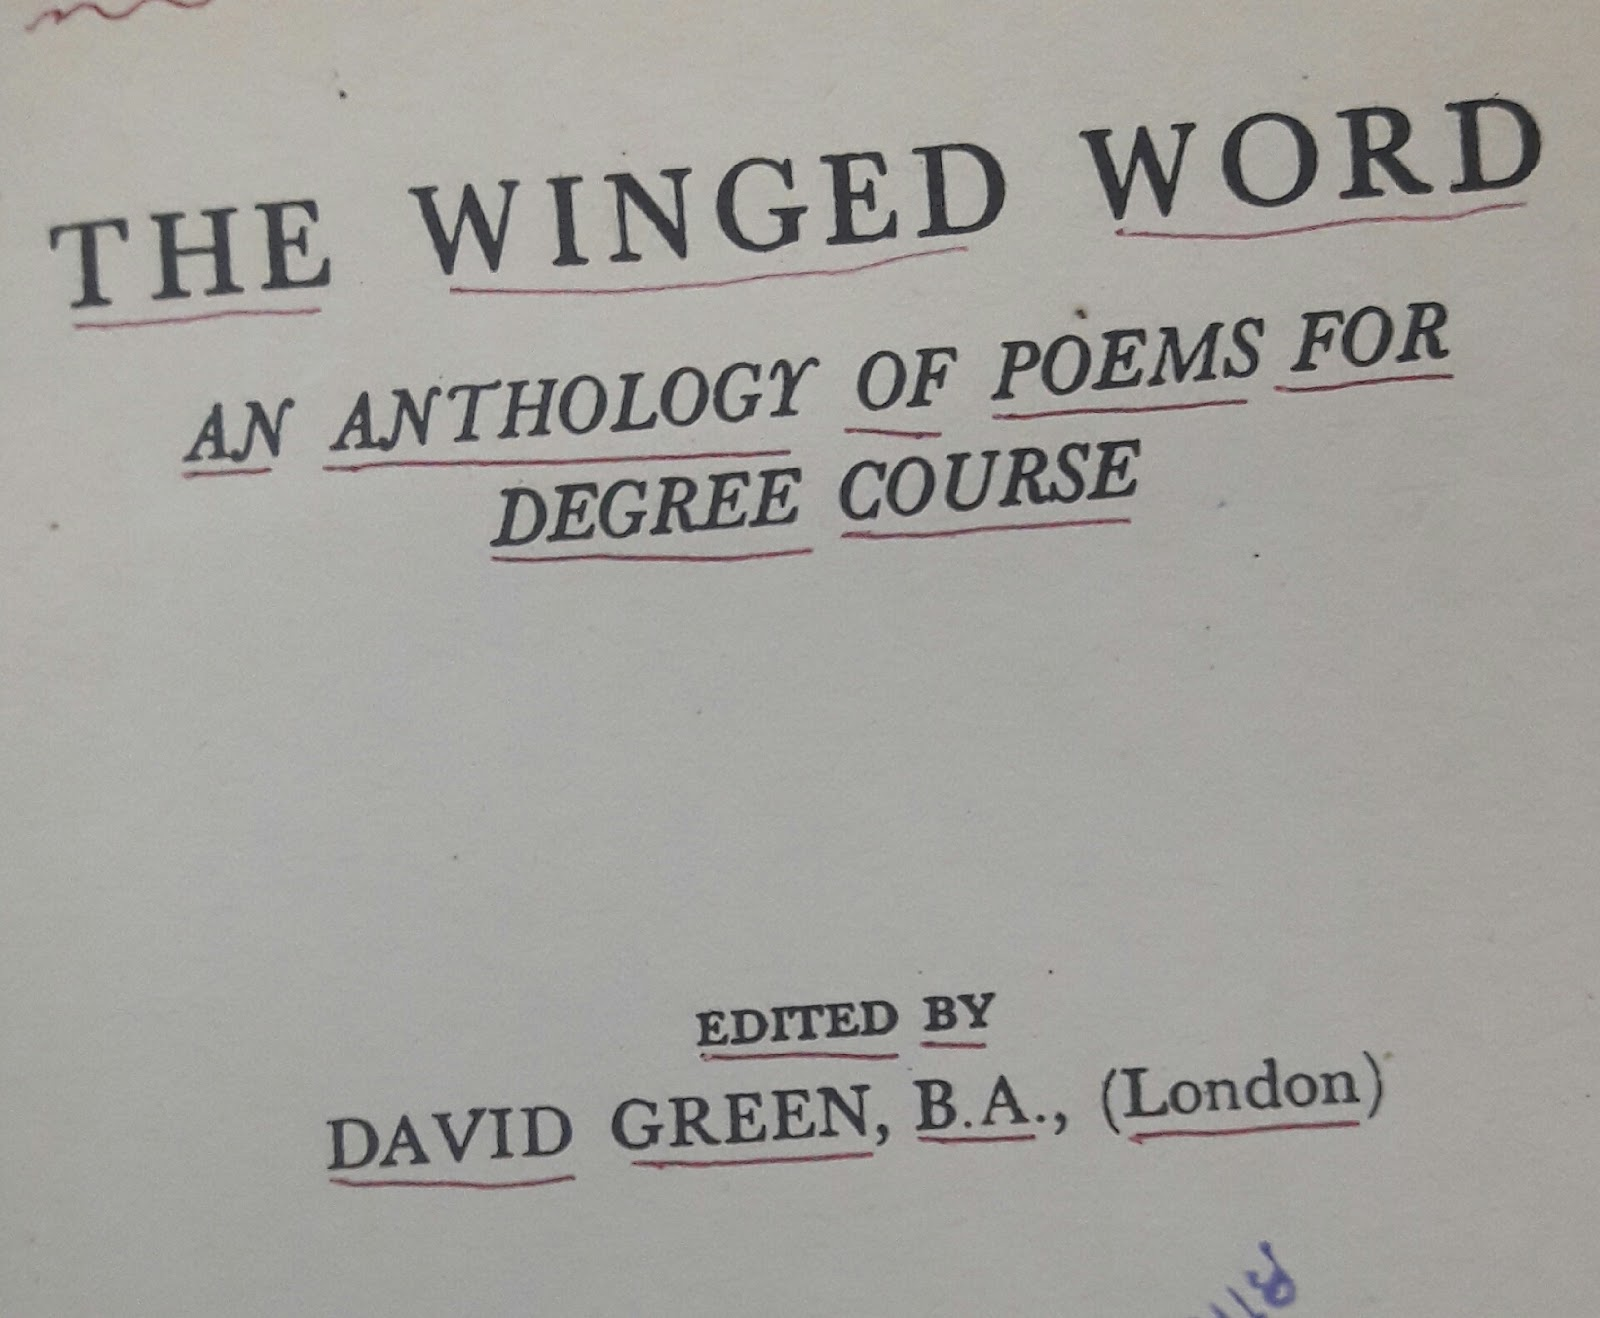 vaidehi hariyani the winged word david green referring to this book after a long time span gives me a immense joy